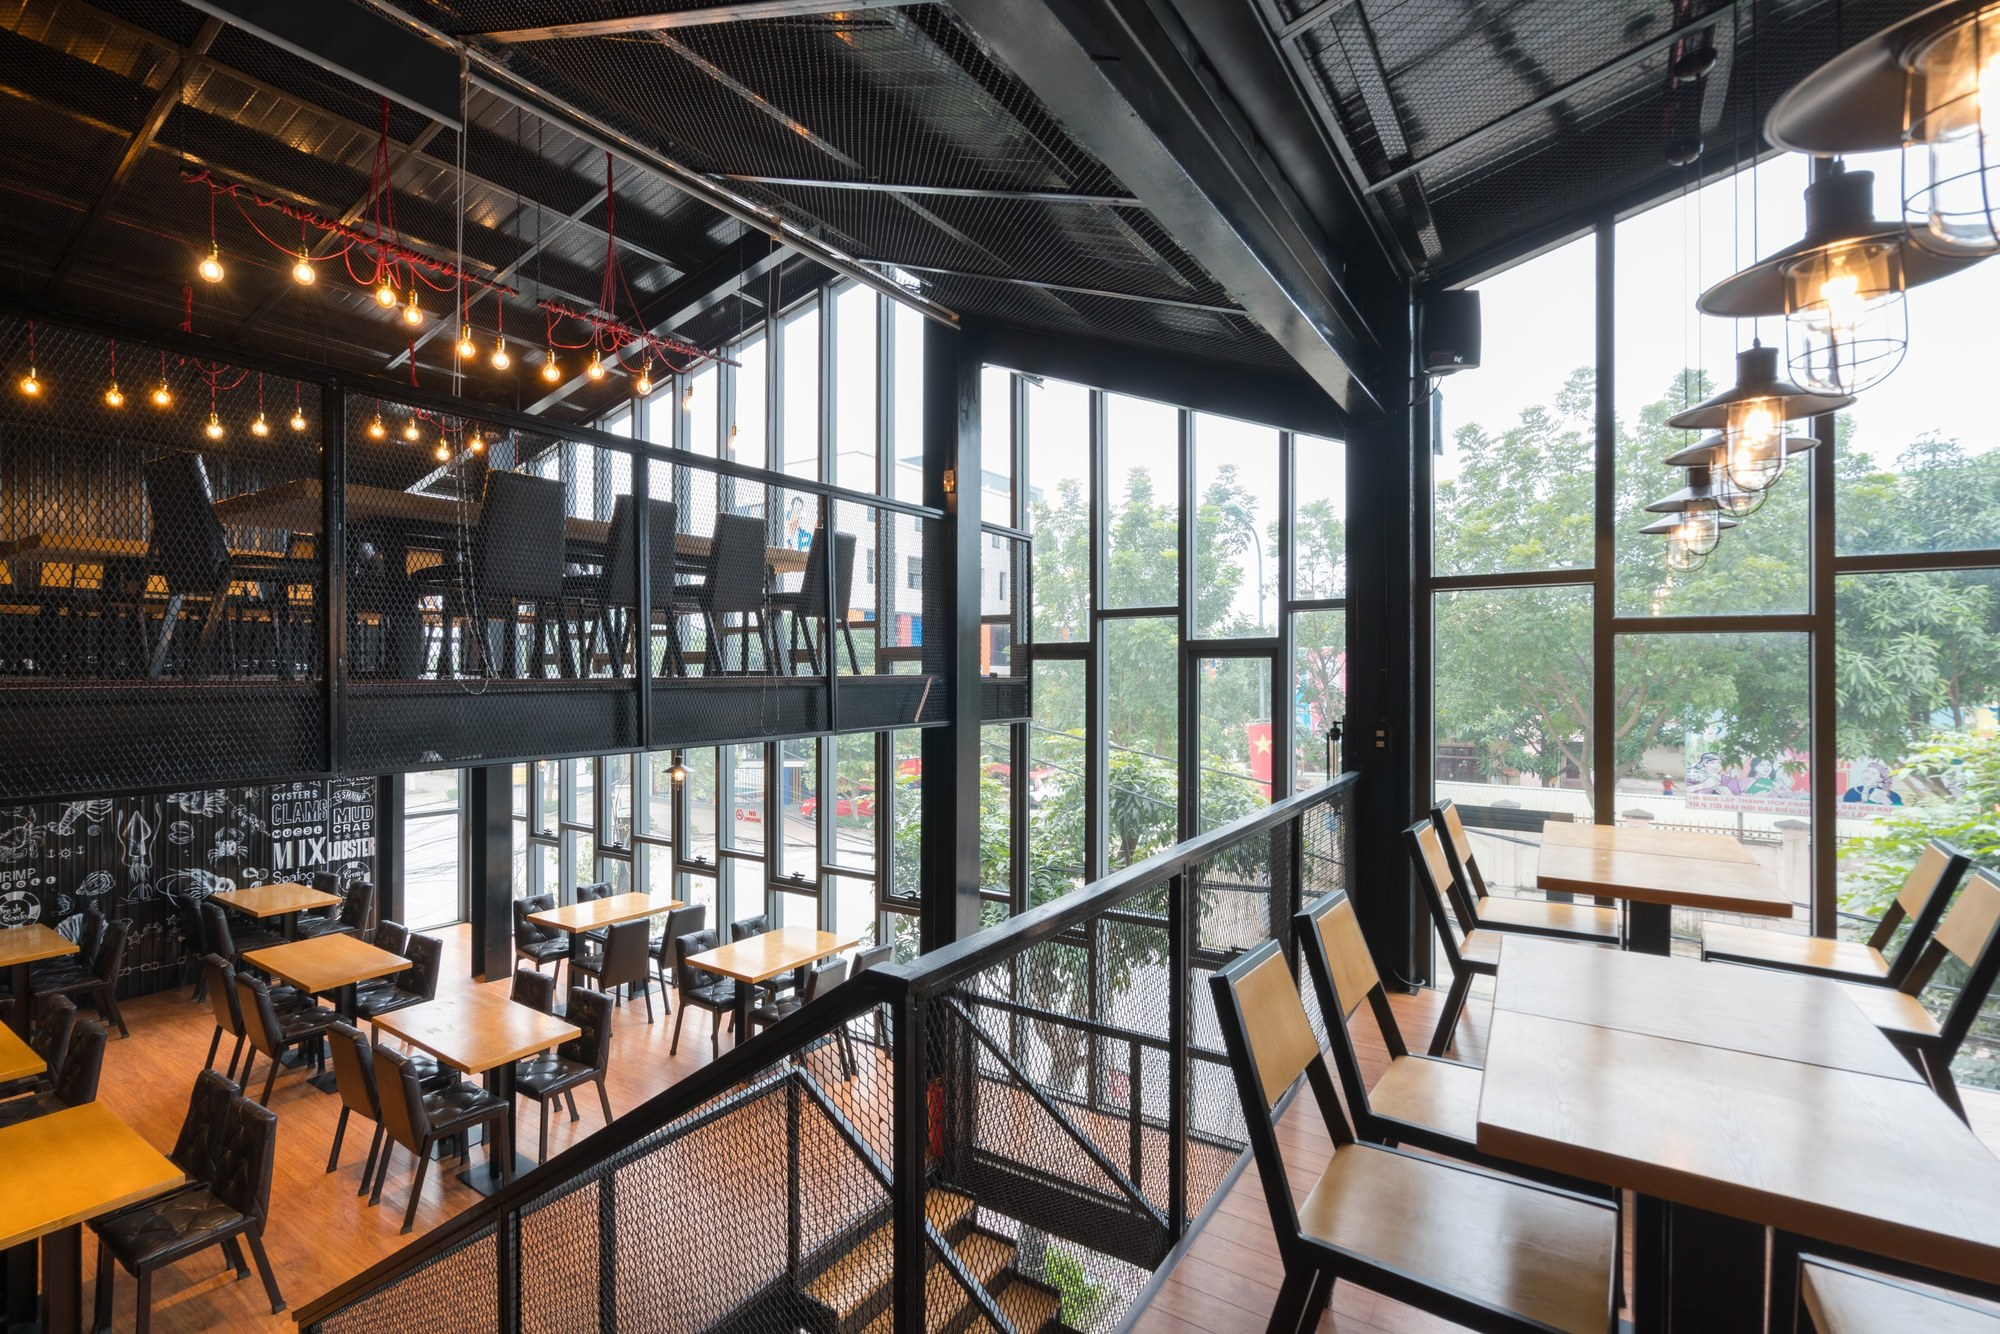 gallery of nh h ng crabsark crawfish restaurant tnt architects 6. Black Bedroom Furniture Sets. Home Design Ideas